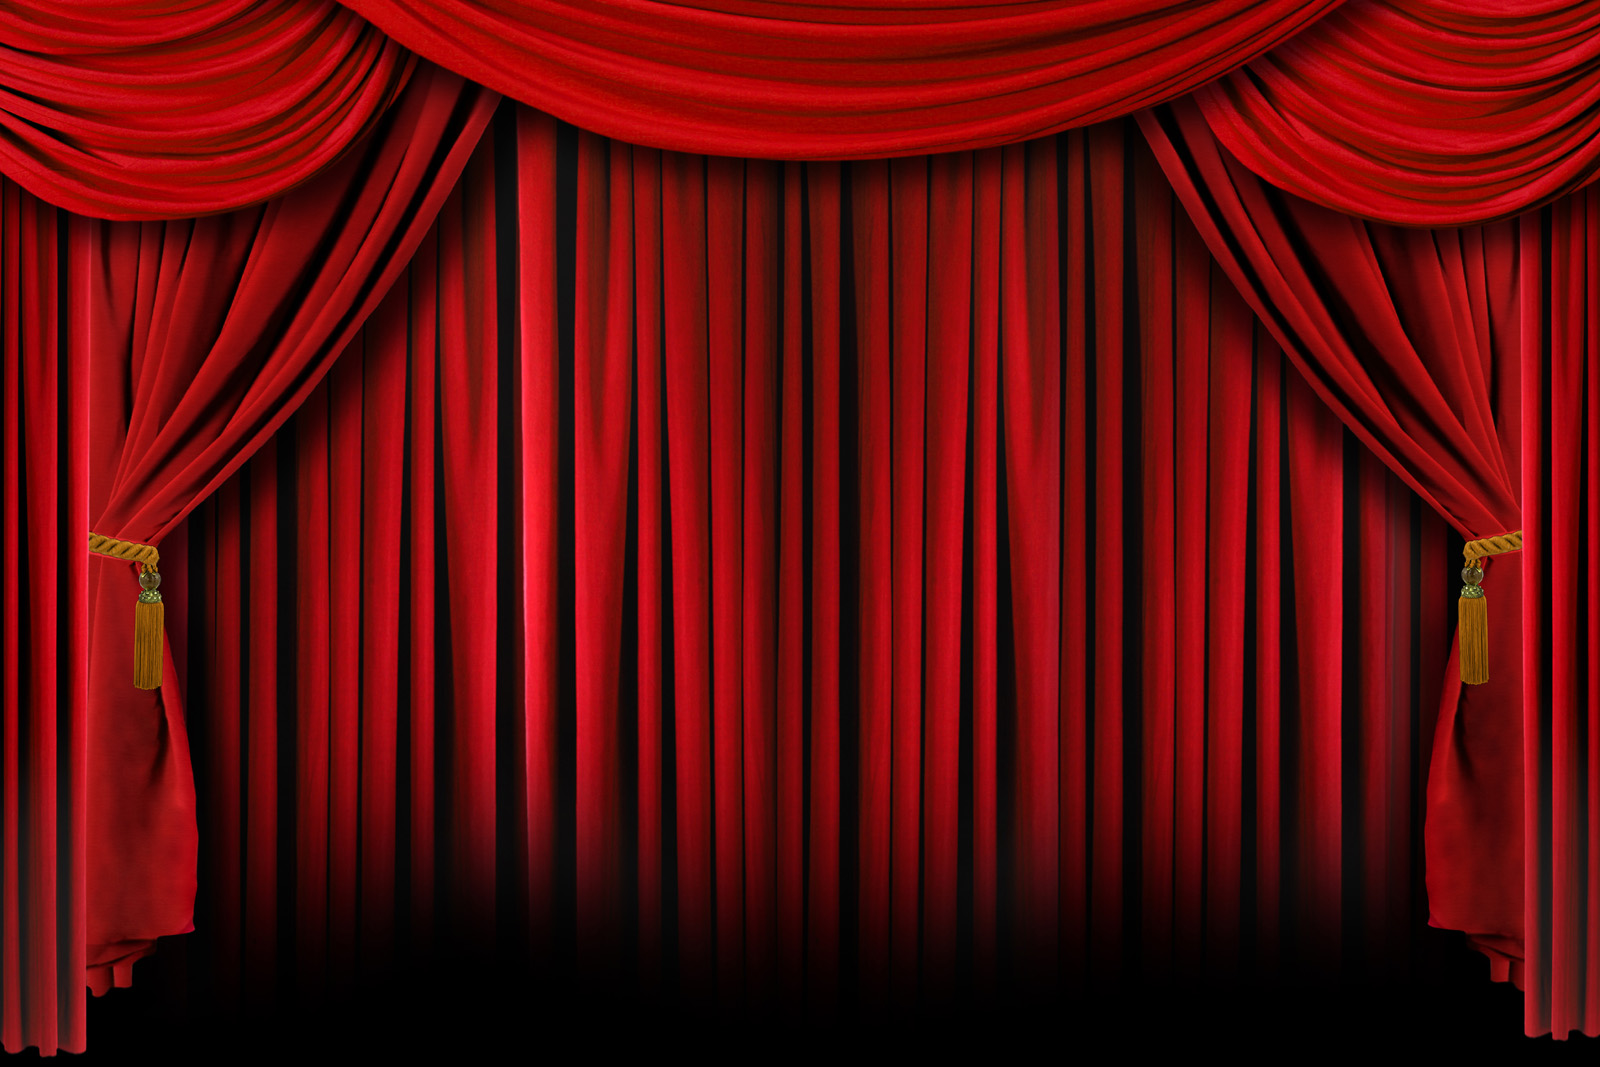 Freegreatpicture Com 11326 Red Curtain Curtain Lc Photo